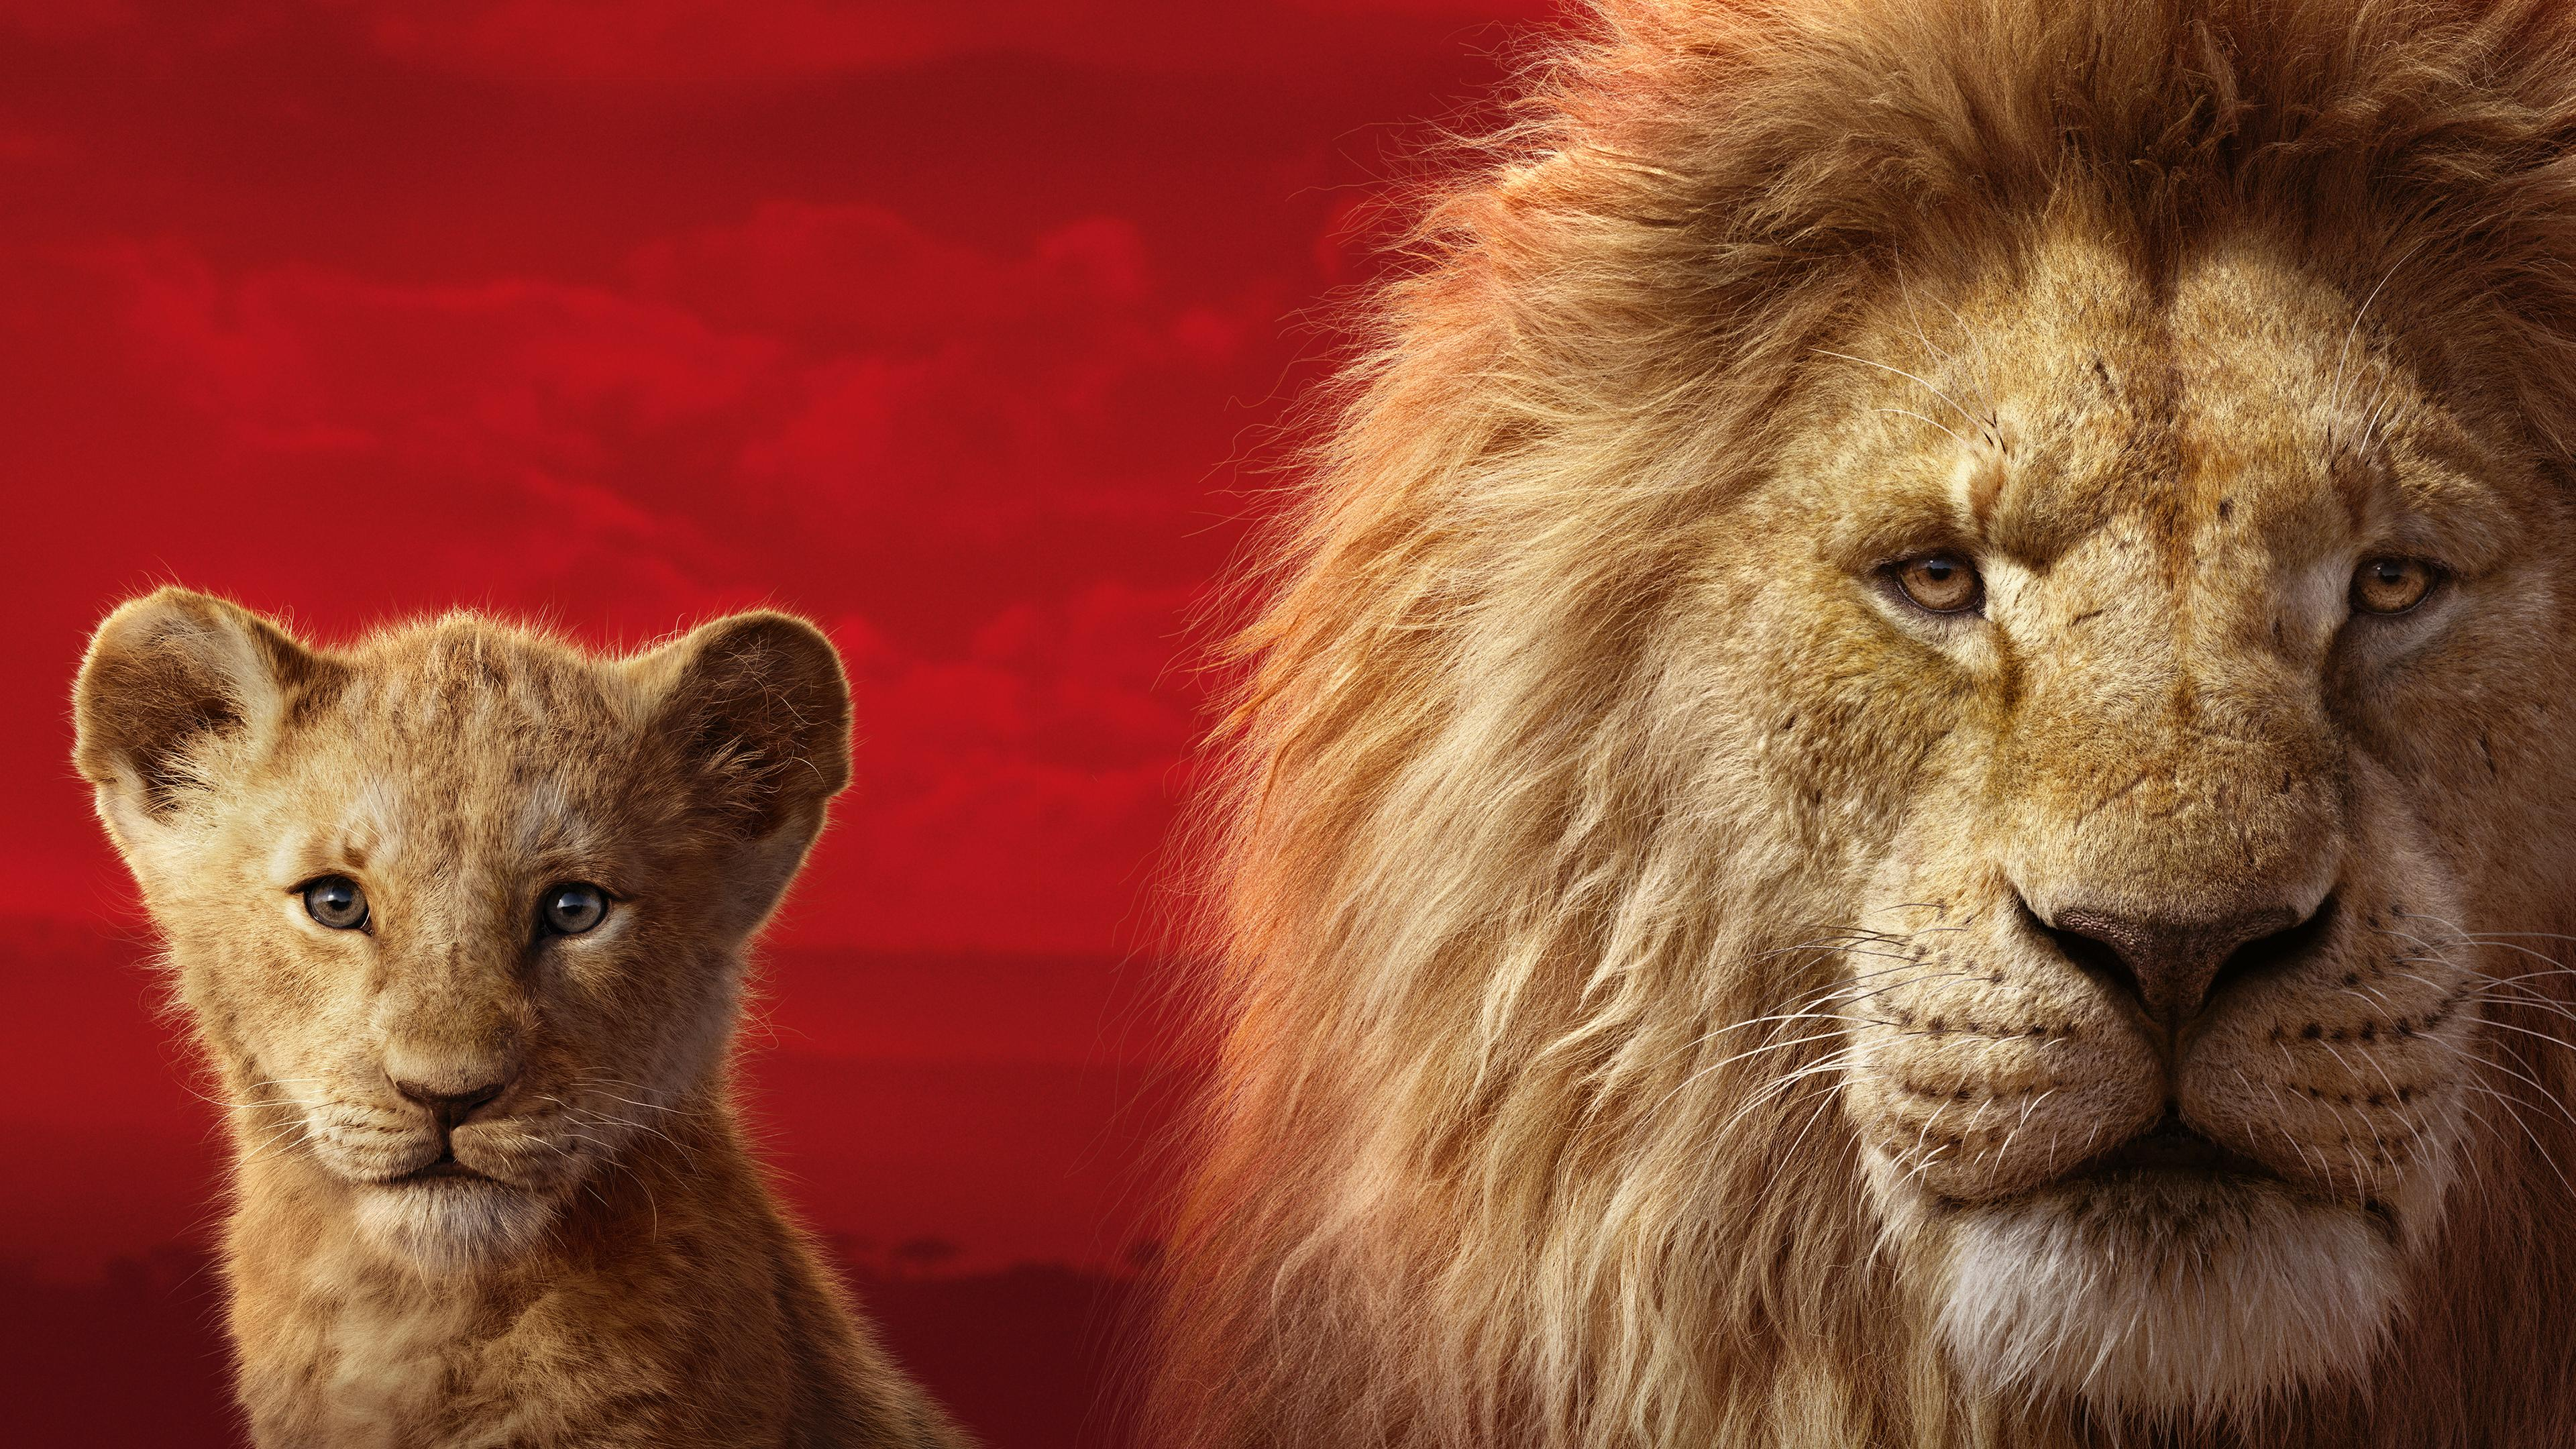 Wallpapers 4k The Lion King 2019 2019 movies wallpapers, 4k